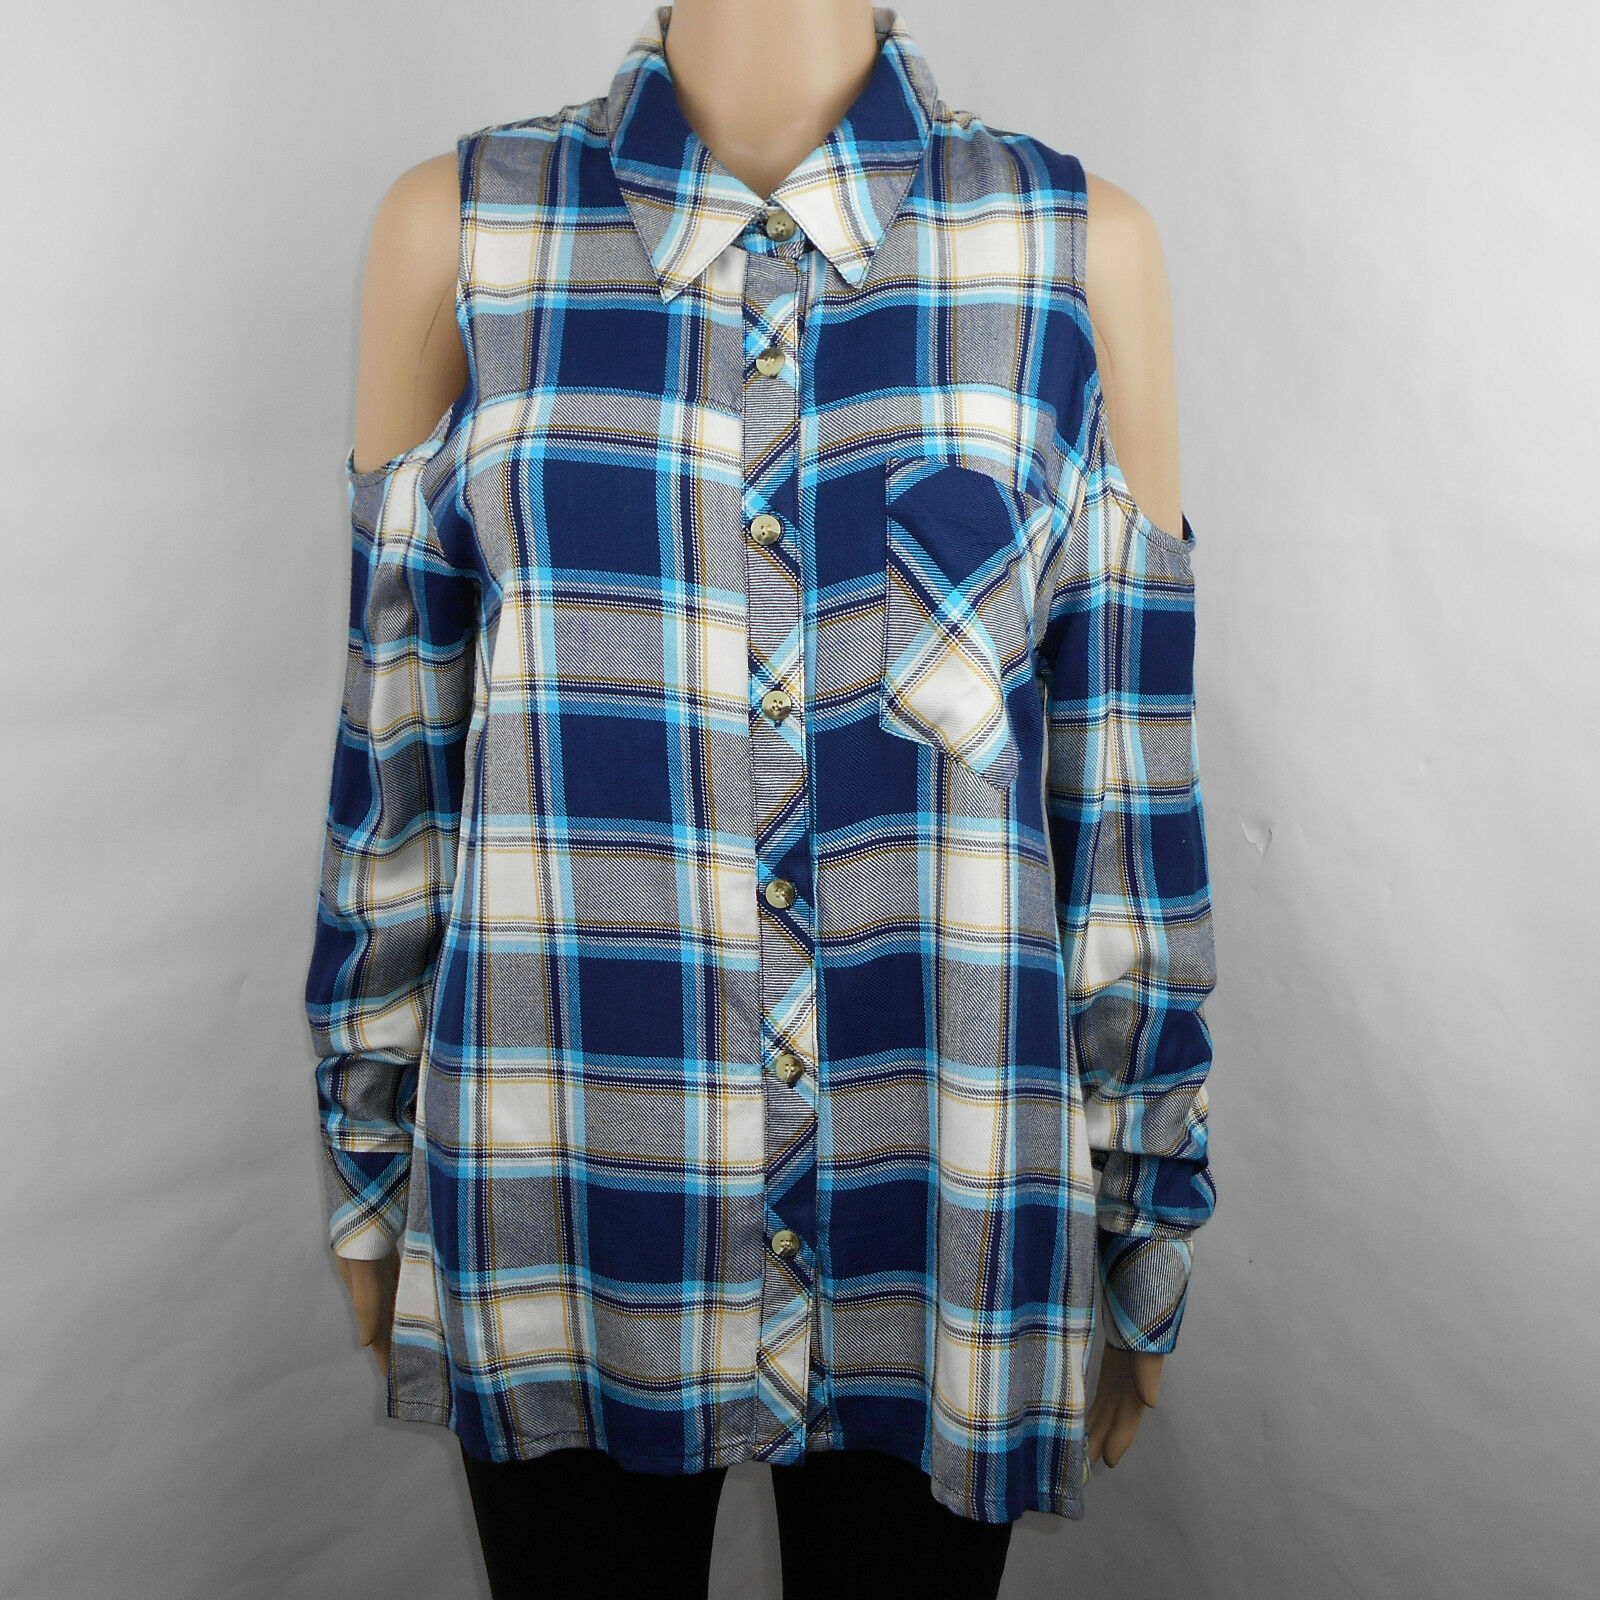 Tolani Anthropologie Navy Paisley Bailey Cold Shoulder Plaid Top Size S Small